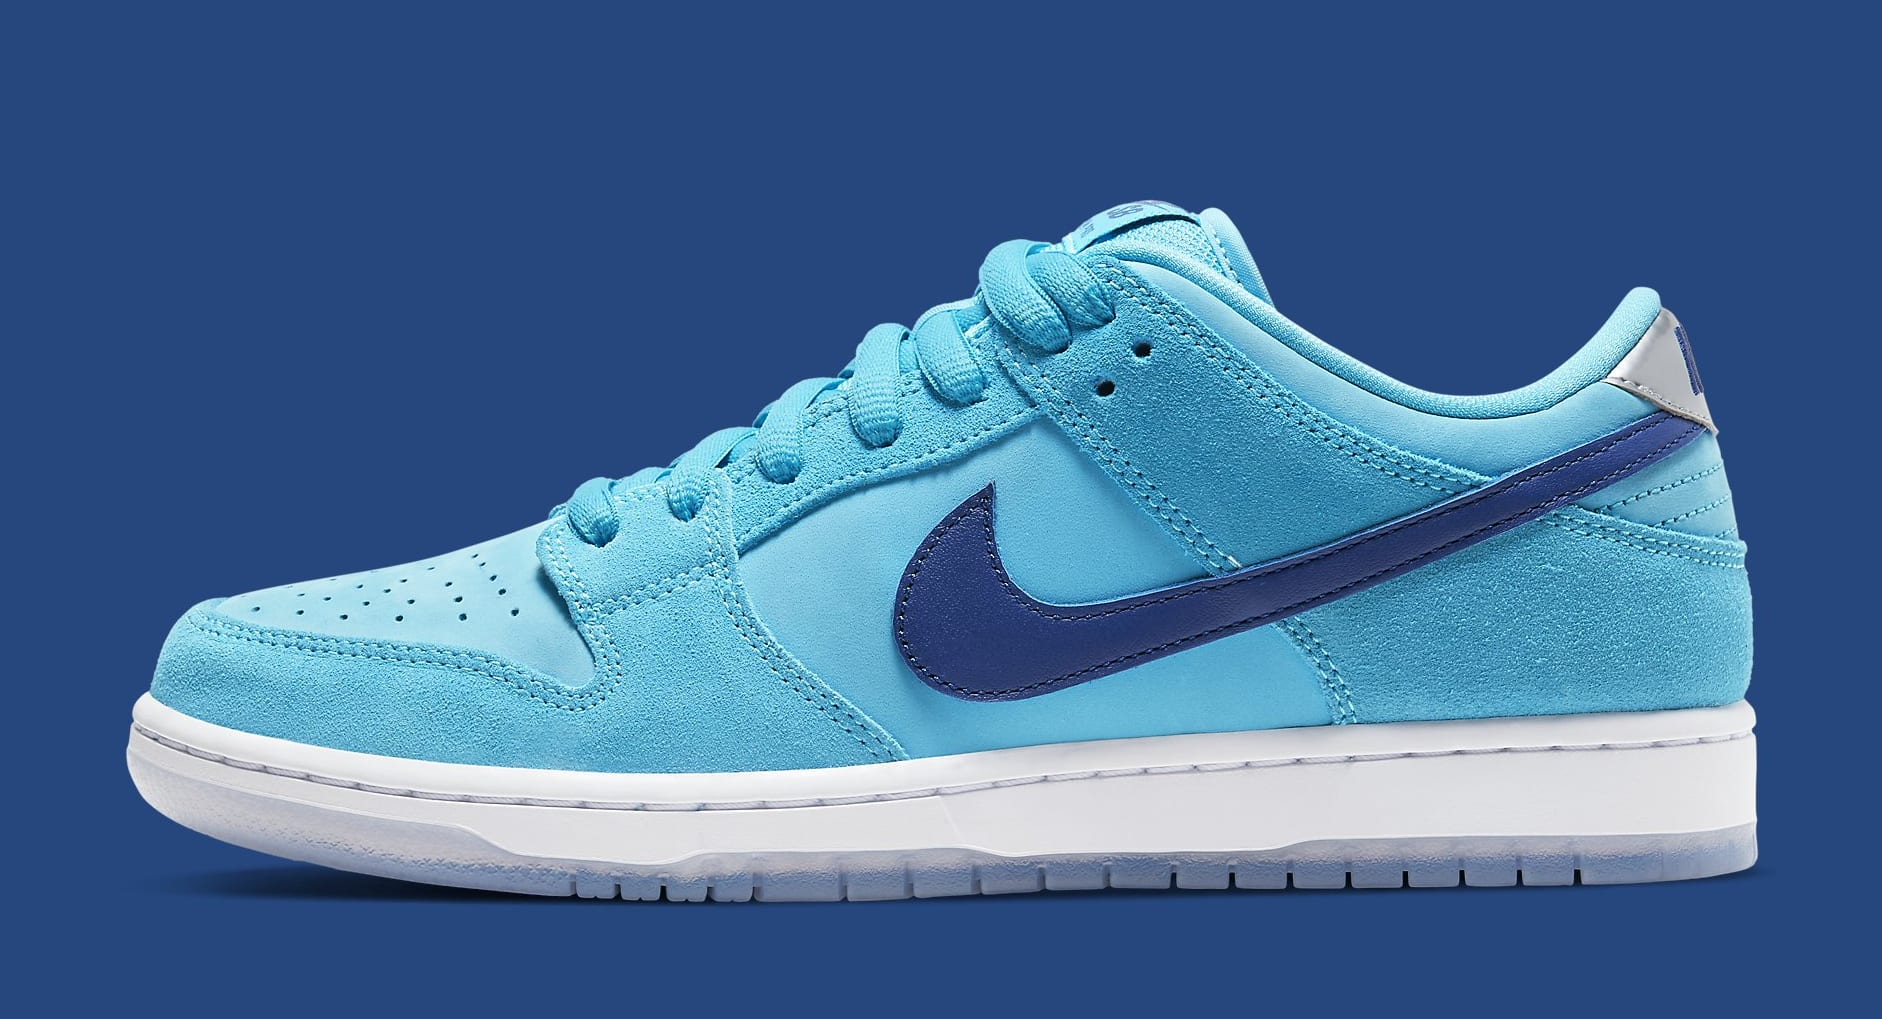 Nike SB Dunk Low 'Blue Fury' BQ6817-400 Lateral